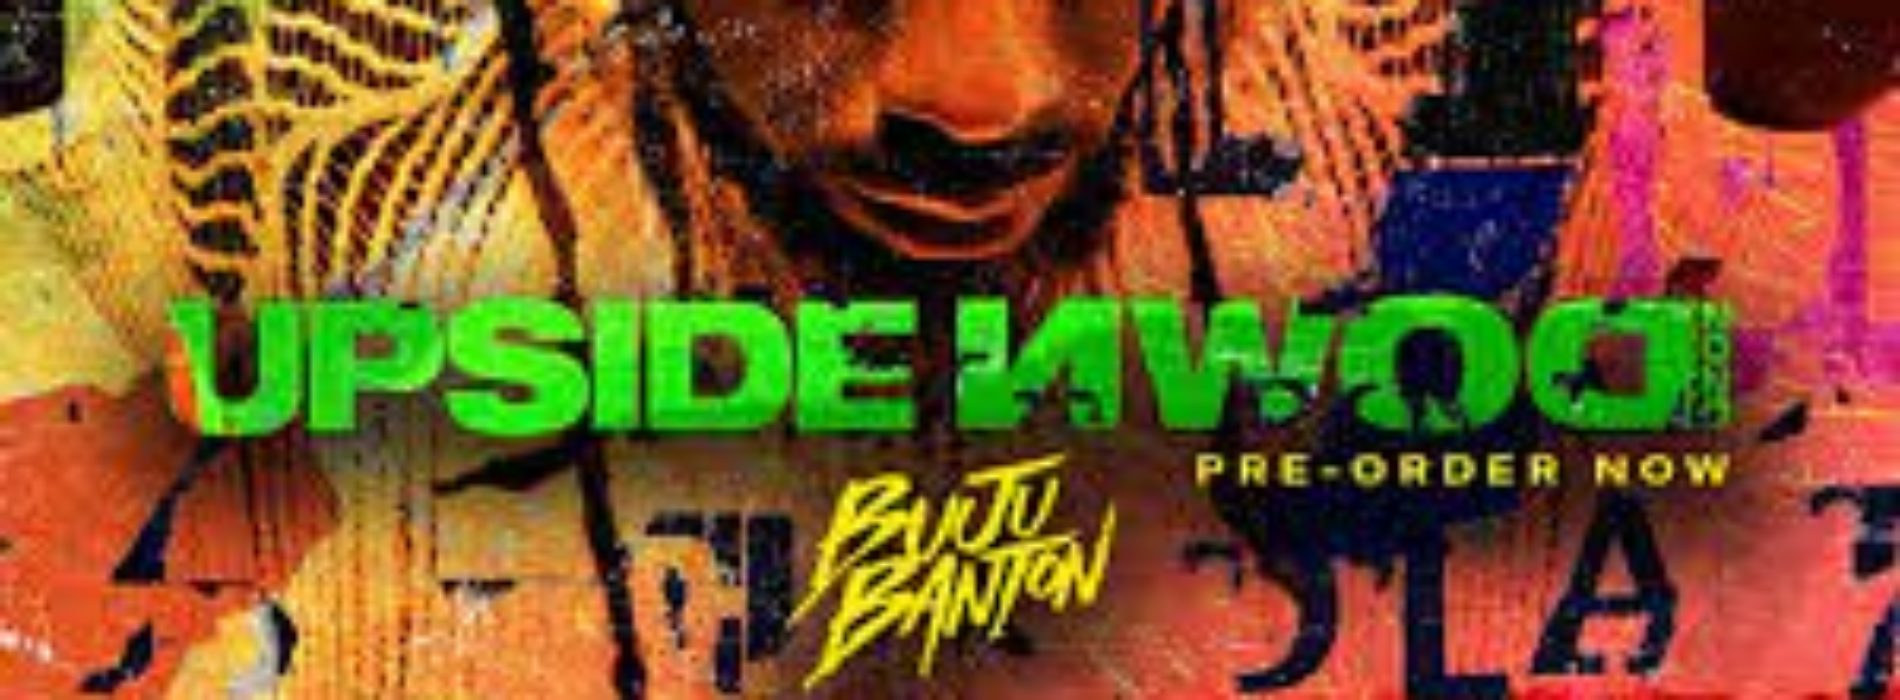 Buju Banton |Call Me feat. Stefflon Don / Yes Mi Friend feat. Stephen Marley /  Lamb of God / Lovely State of Mind /Buried Alive / 400 Years / Memories feat. John Legend /  Cherry Pie feat. Pharrell Williams  (Official Audio) | Upside Down – Juin 2020